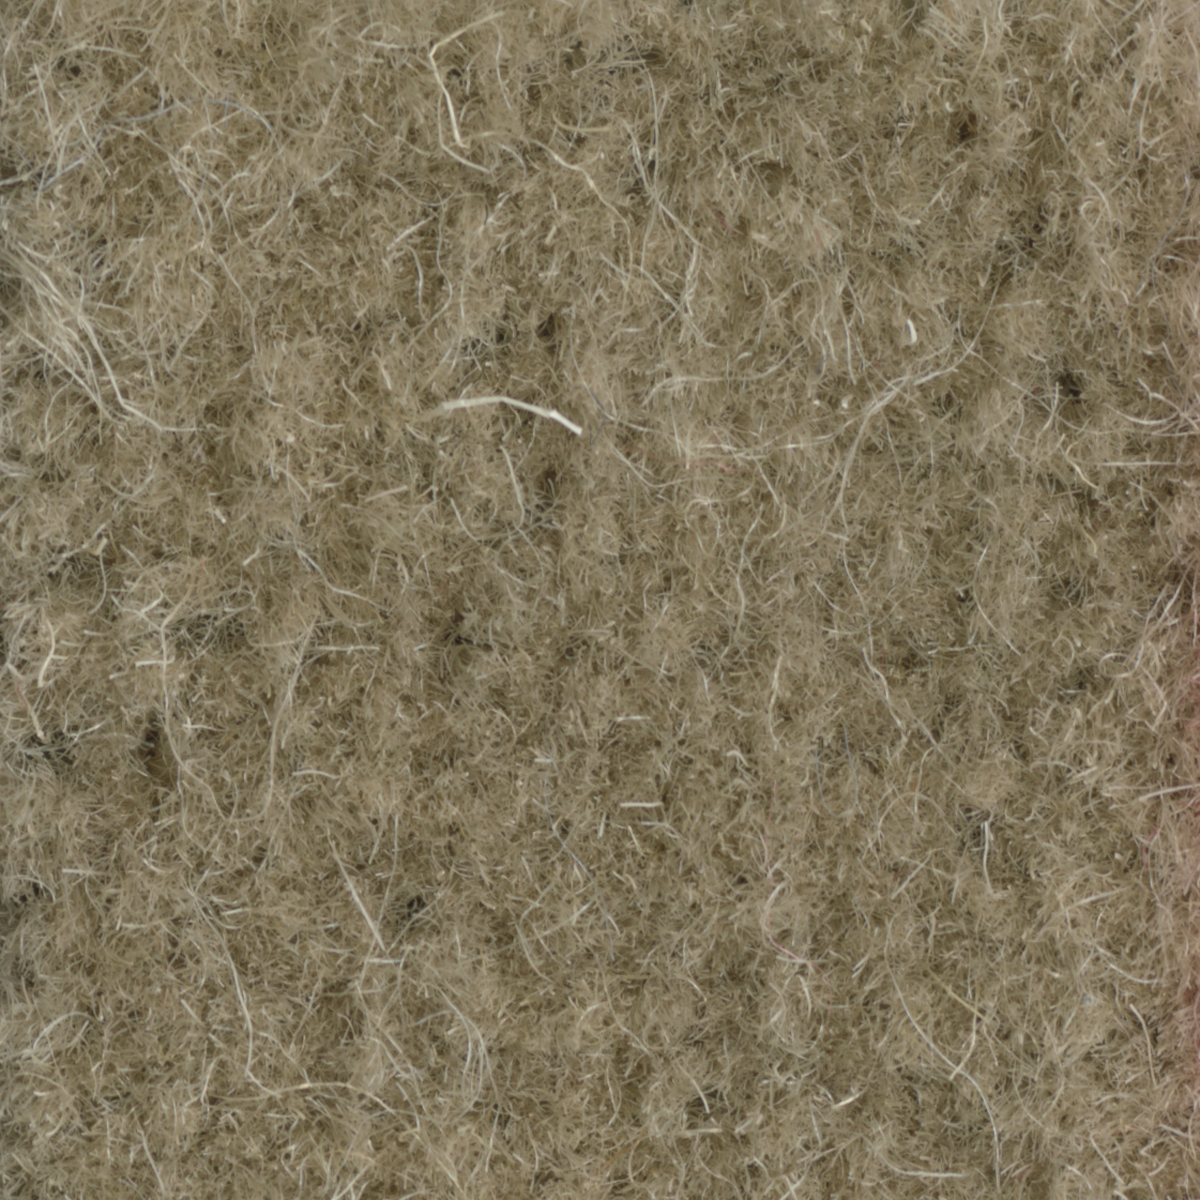 TAN ENGLISH WILTON II WOOL CARPET